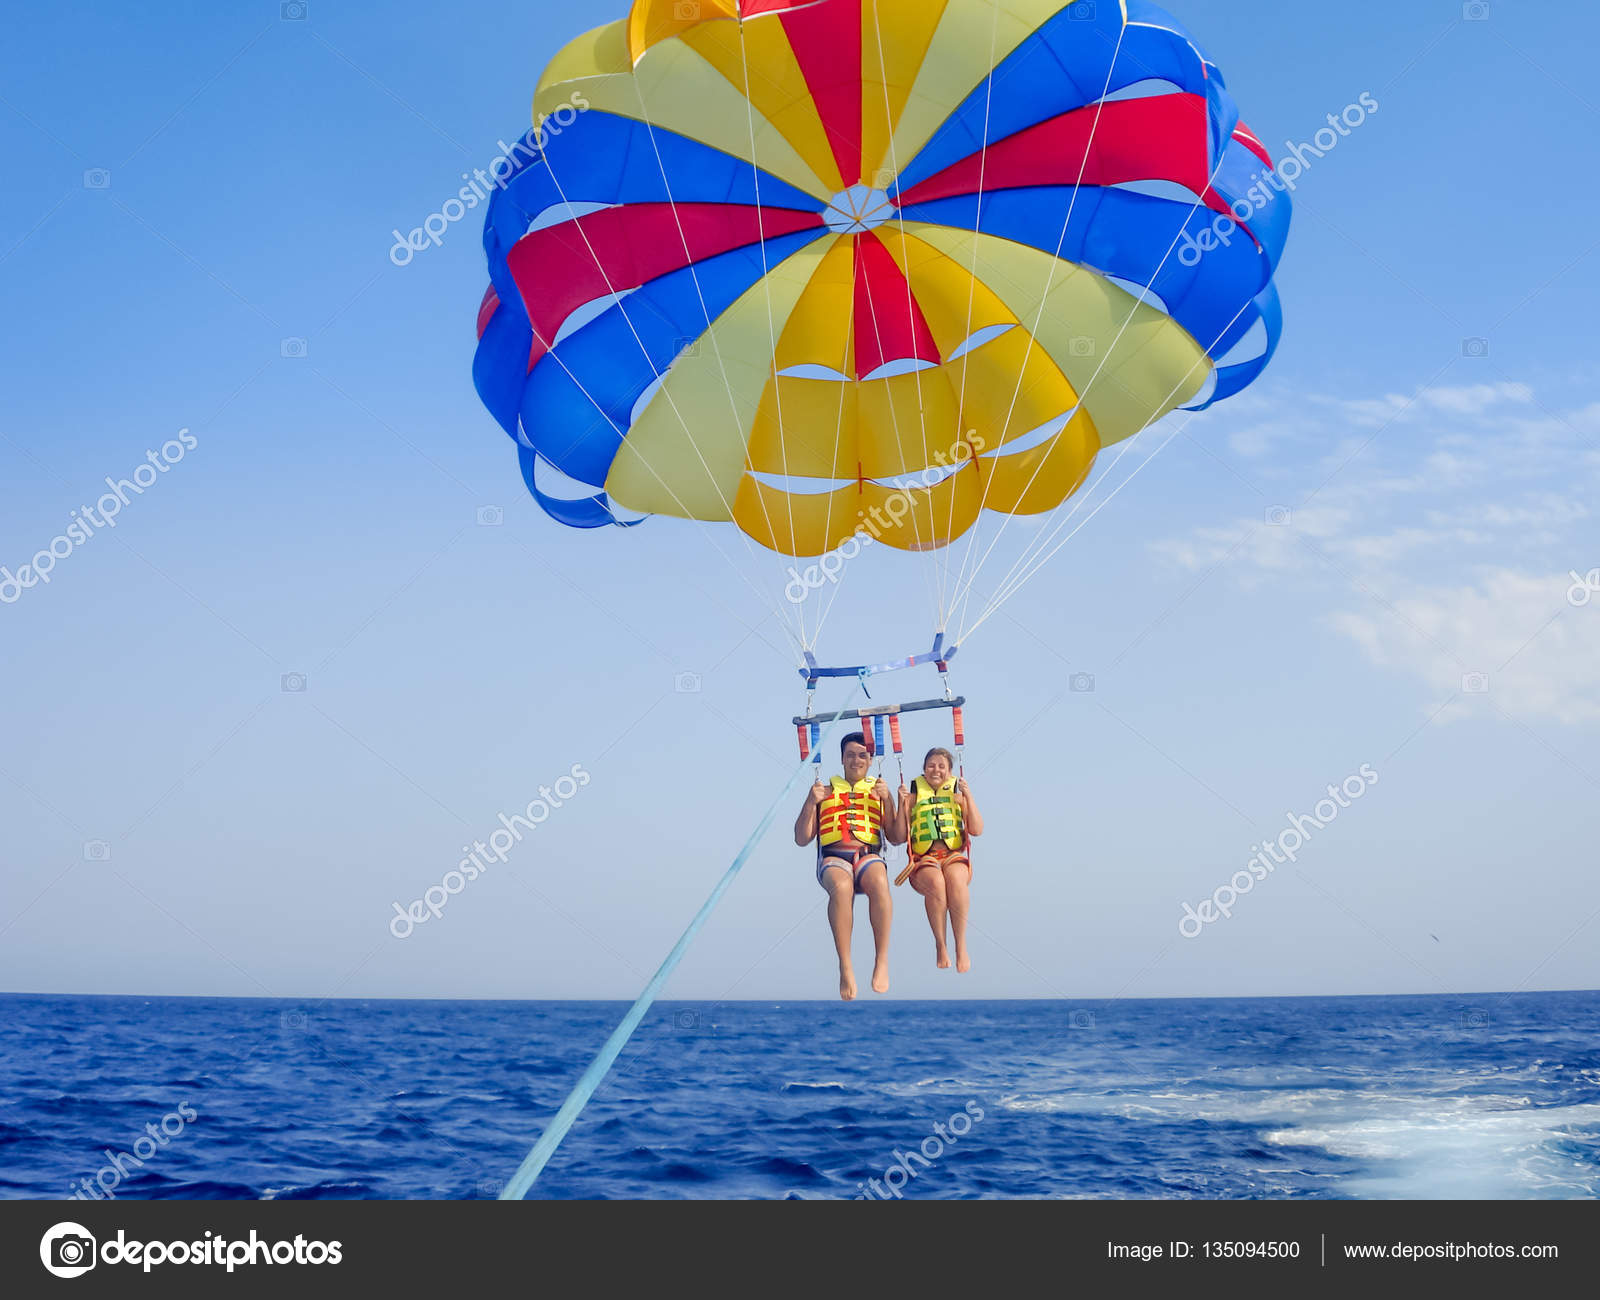 parachute ascensionnel in english